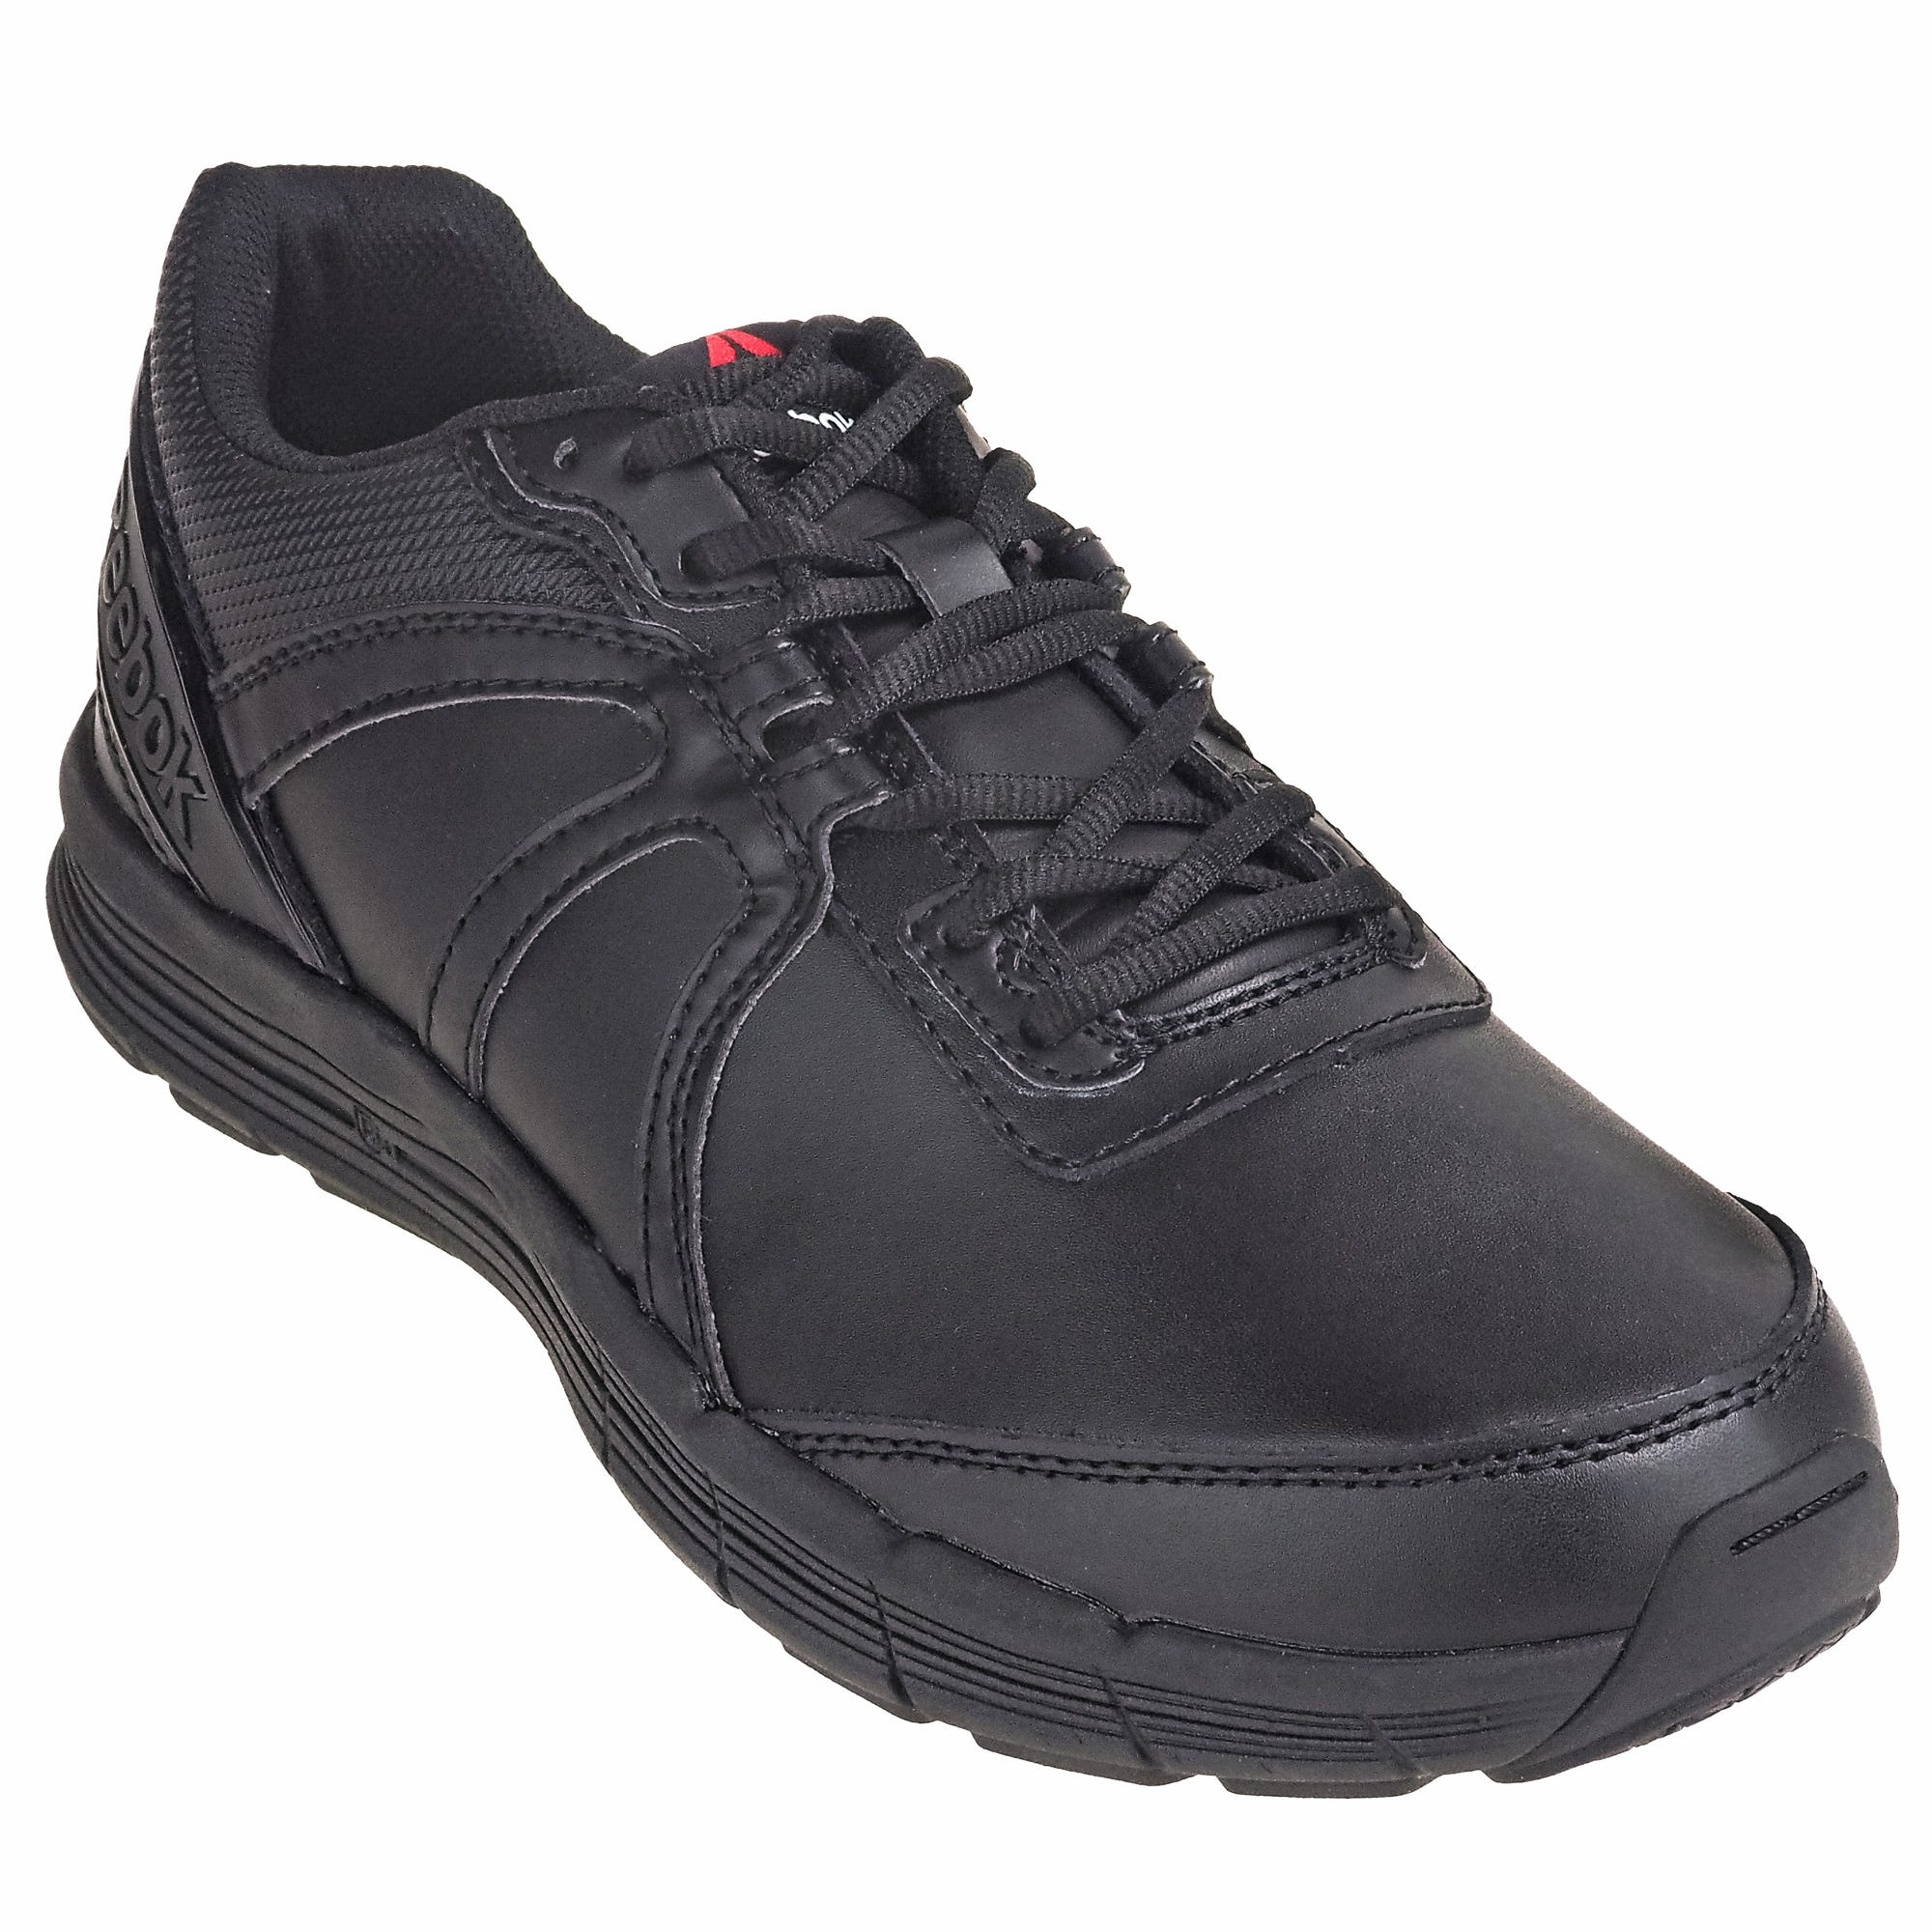 Reebok RB3500 Black EH Non-Metallic Guide Performance Cross Trainers